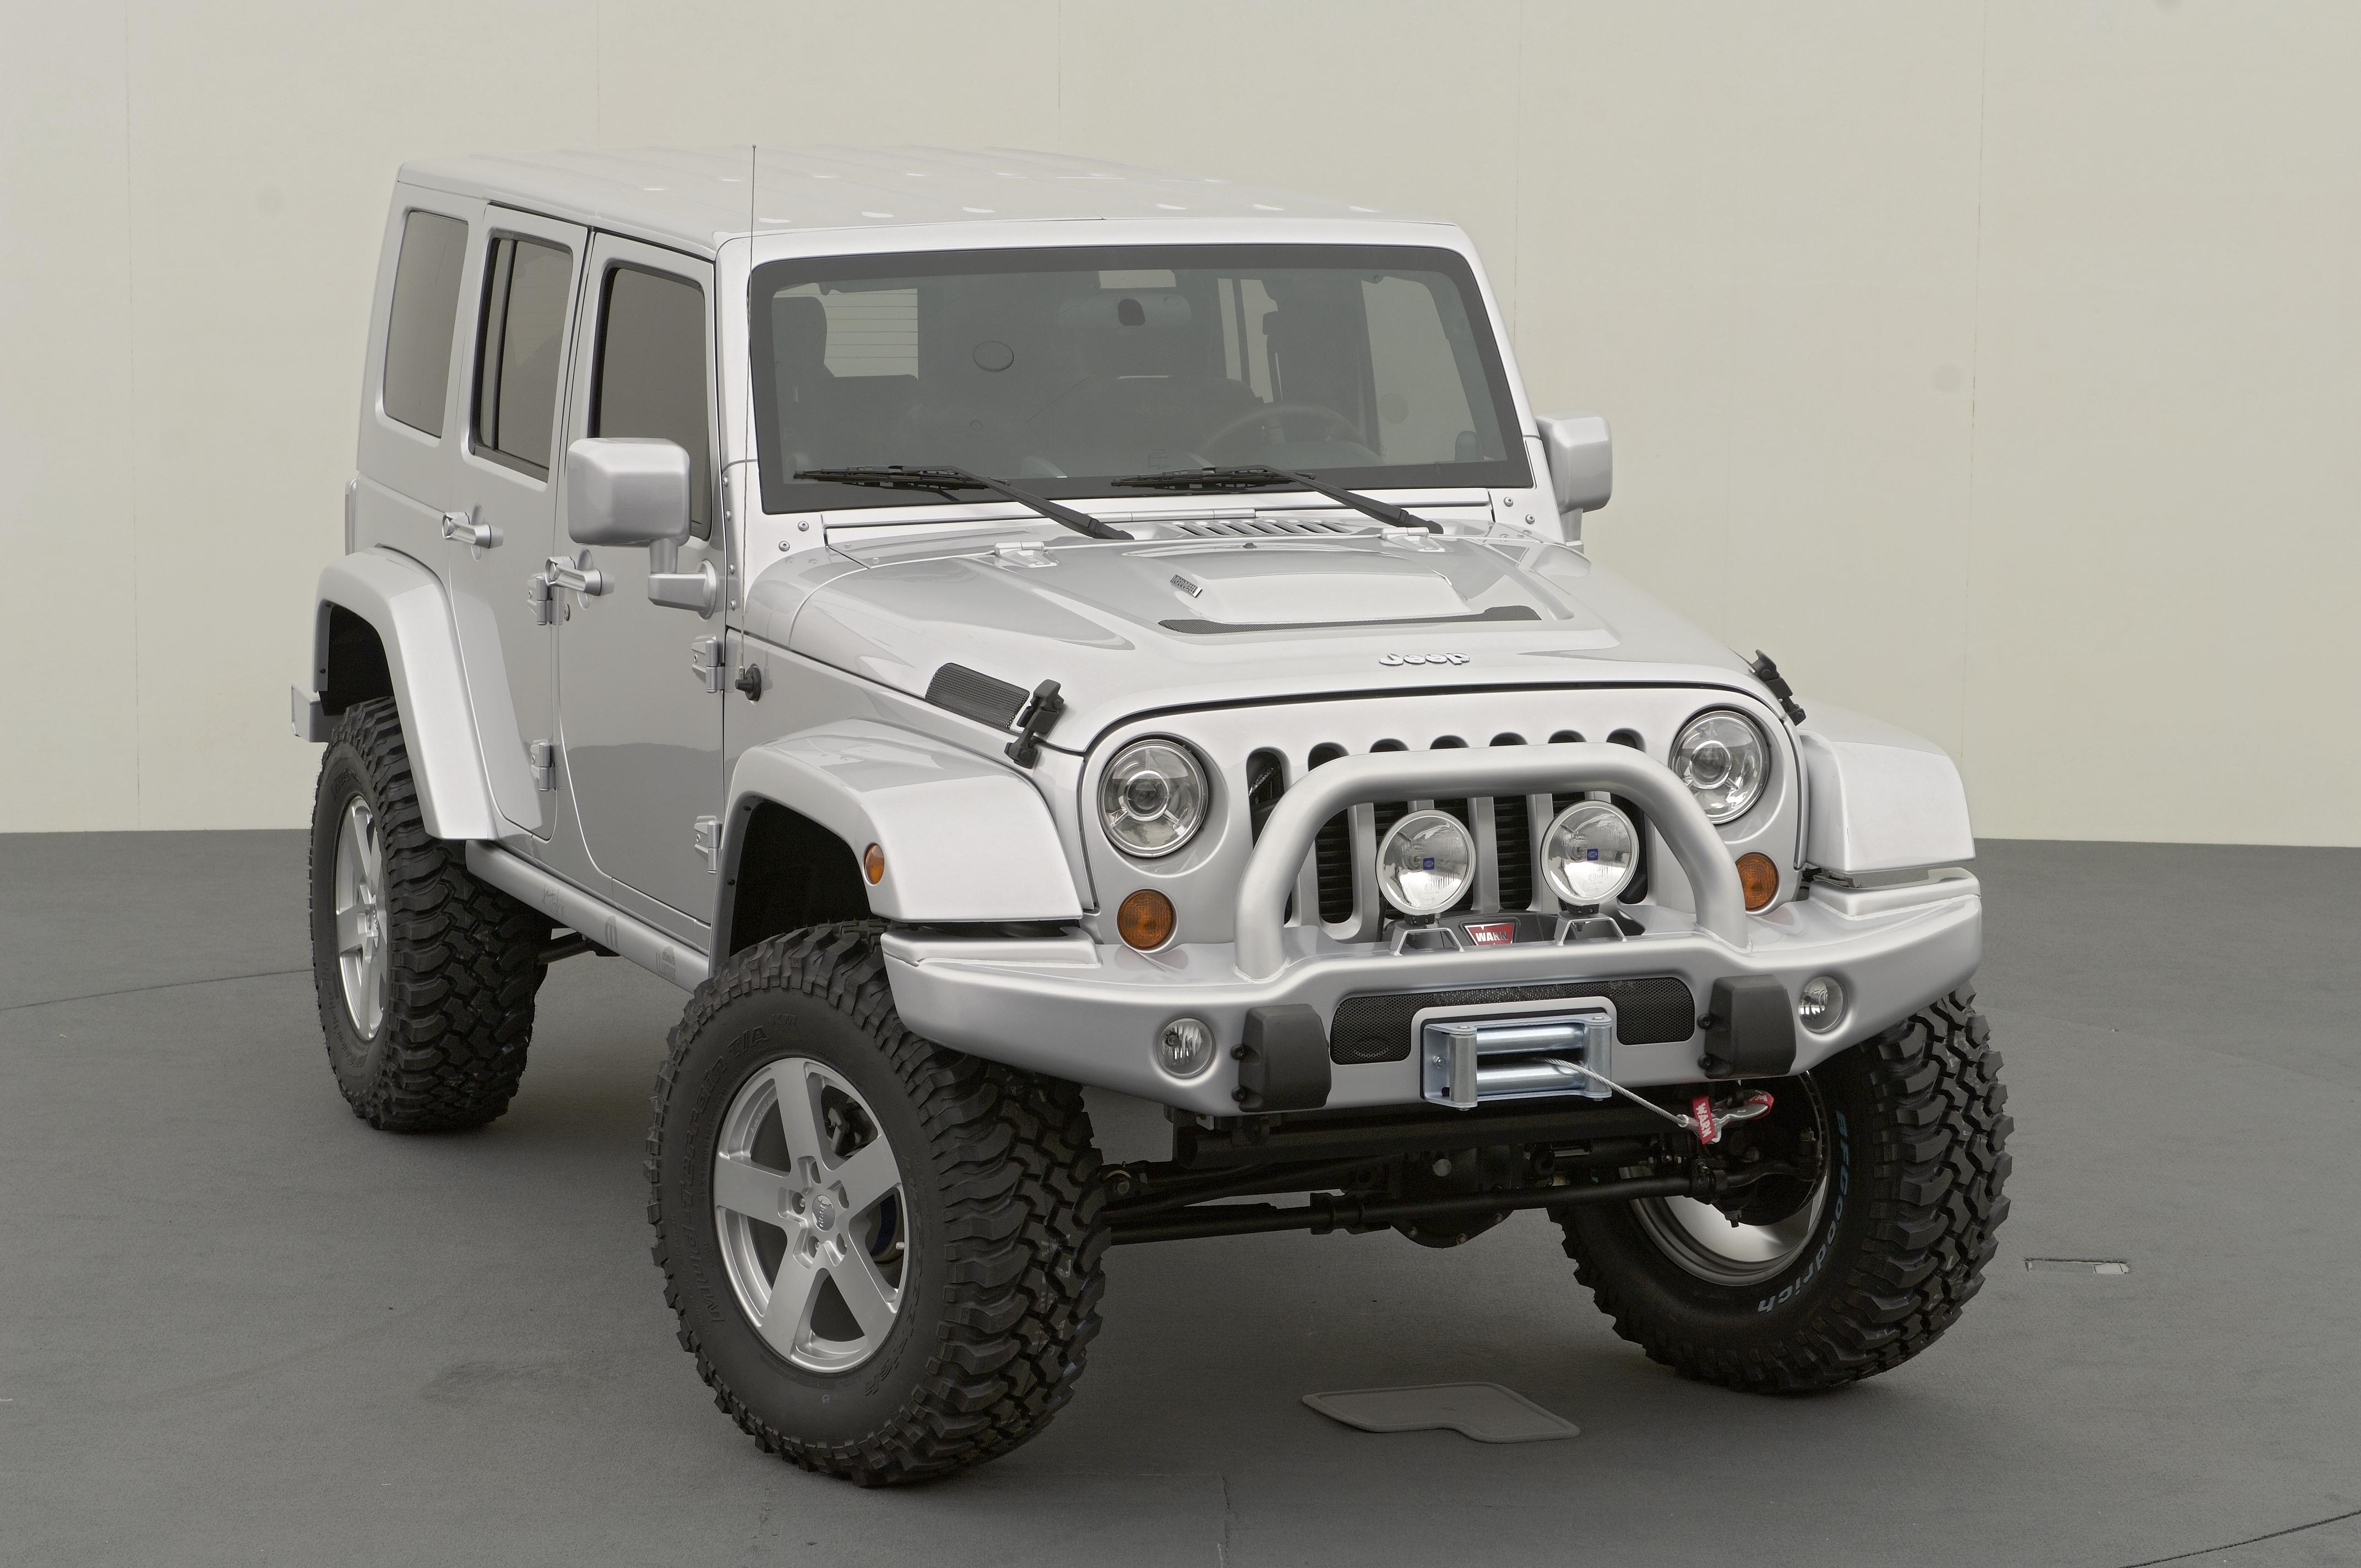 Diesel Jeep Wrangler >> 2007 Jeep Wrangler Unlimited Rubicon | Top Speed